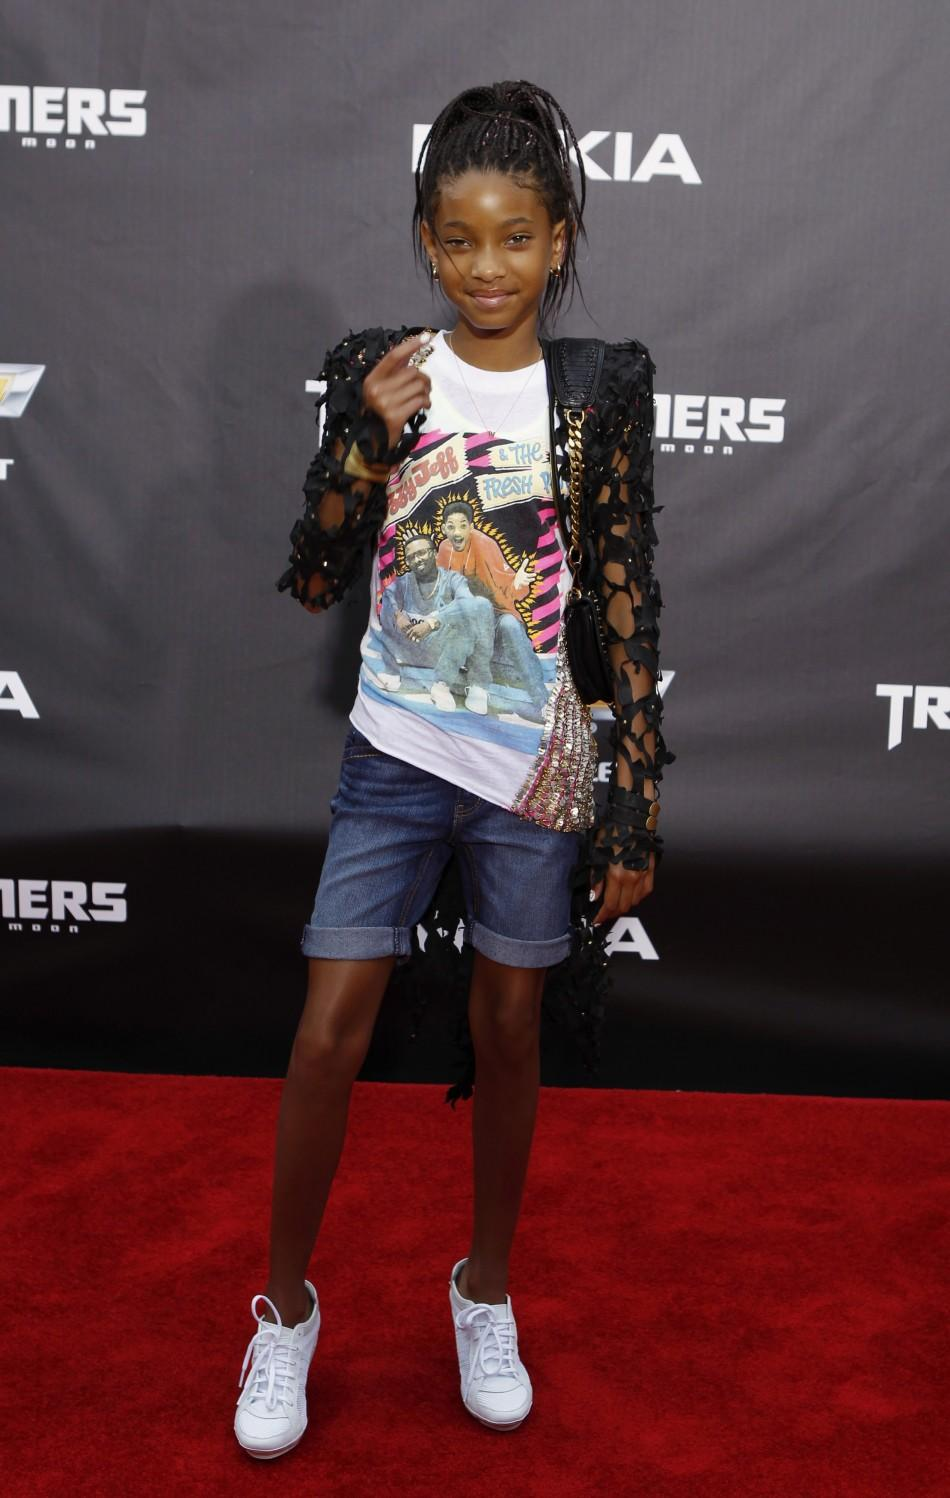 """Actress Willow Smith arrives for the premiere of """"Transformers: Dark of The Moon"""" in Times Square in New York June 28, 2011."""